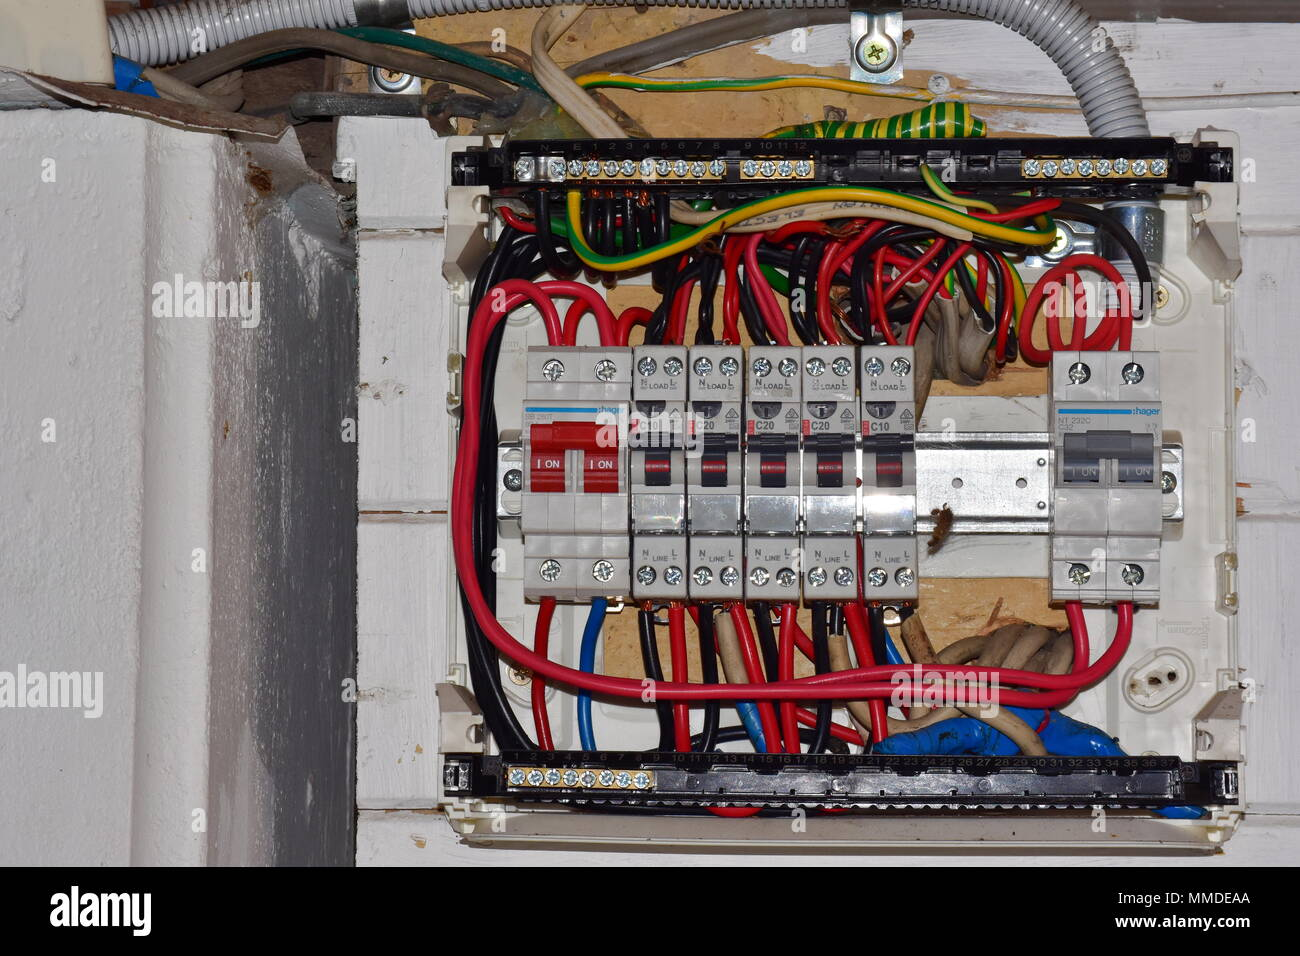 hight resolution of open electrical fuse box wiring diagrams opened in a house fuse box